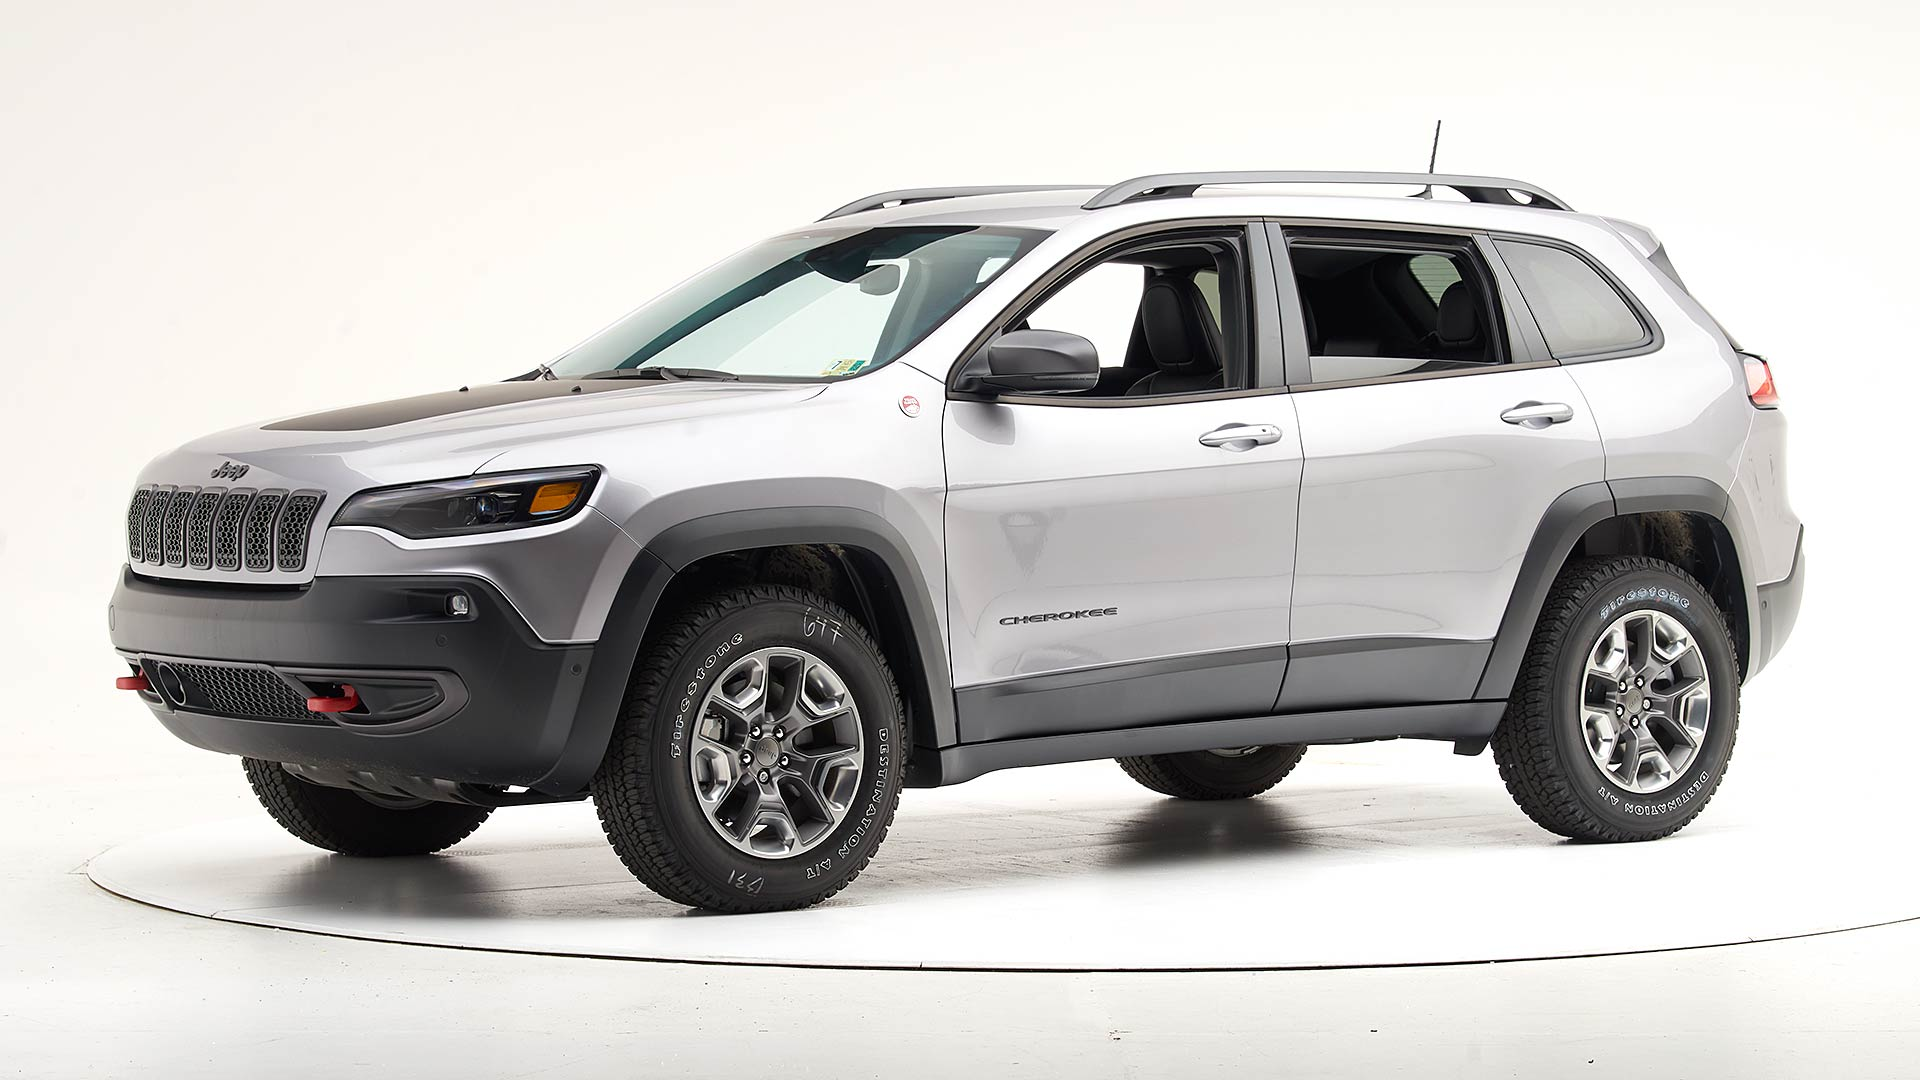 2020 Jeep Cherokee 4-door SUV